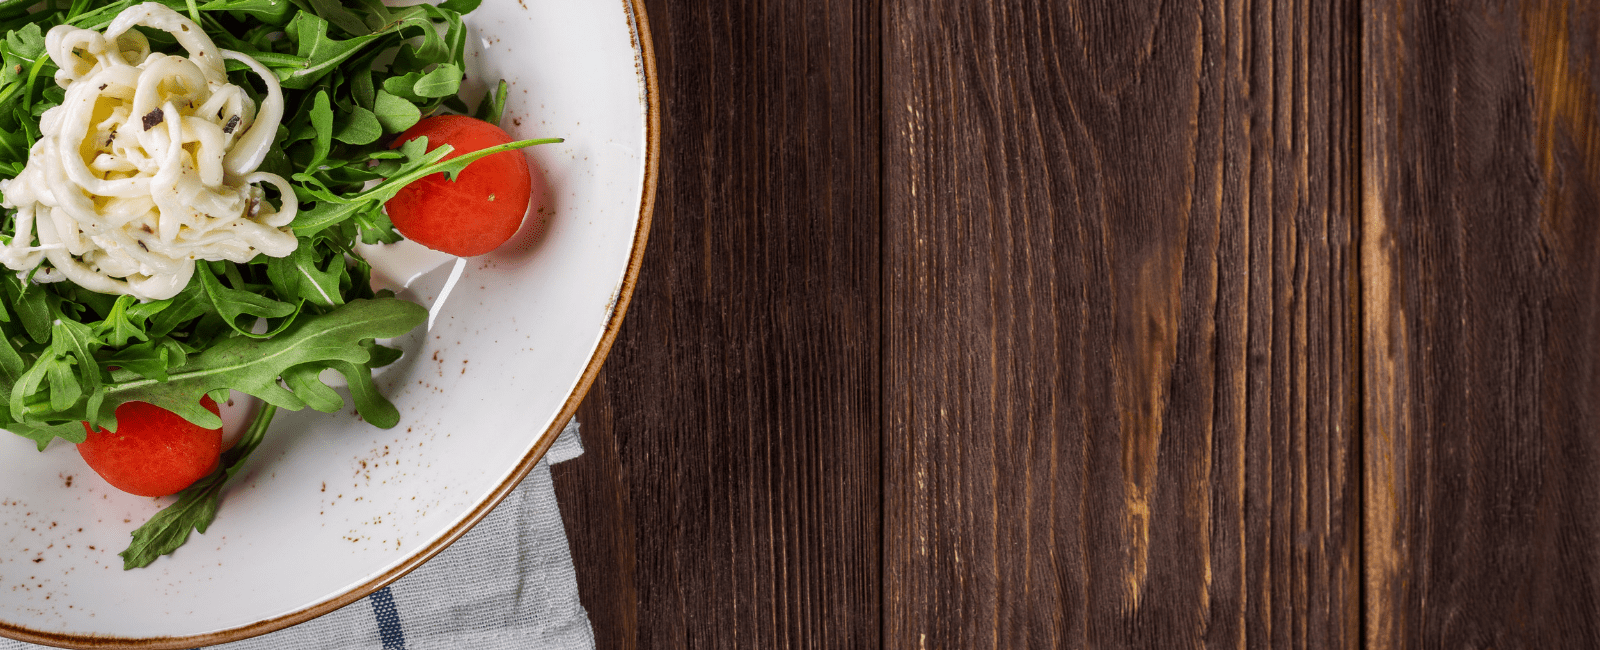 10 Frequently Asked Questions about Meal Planning